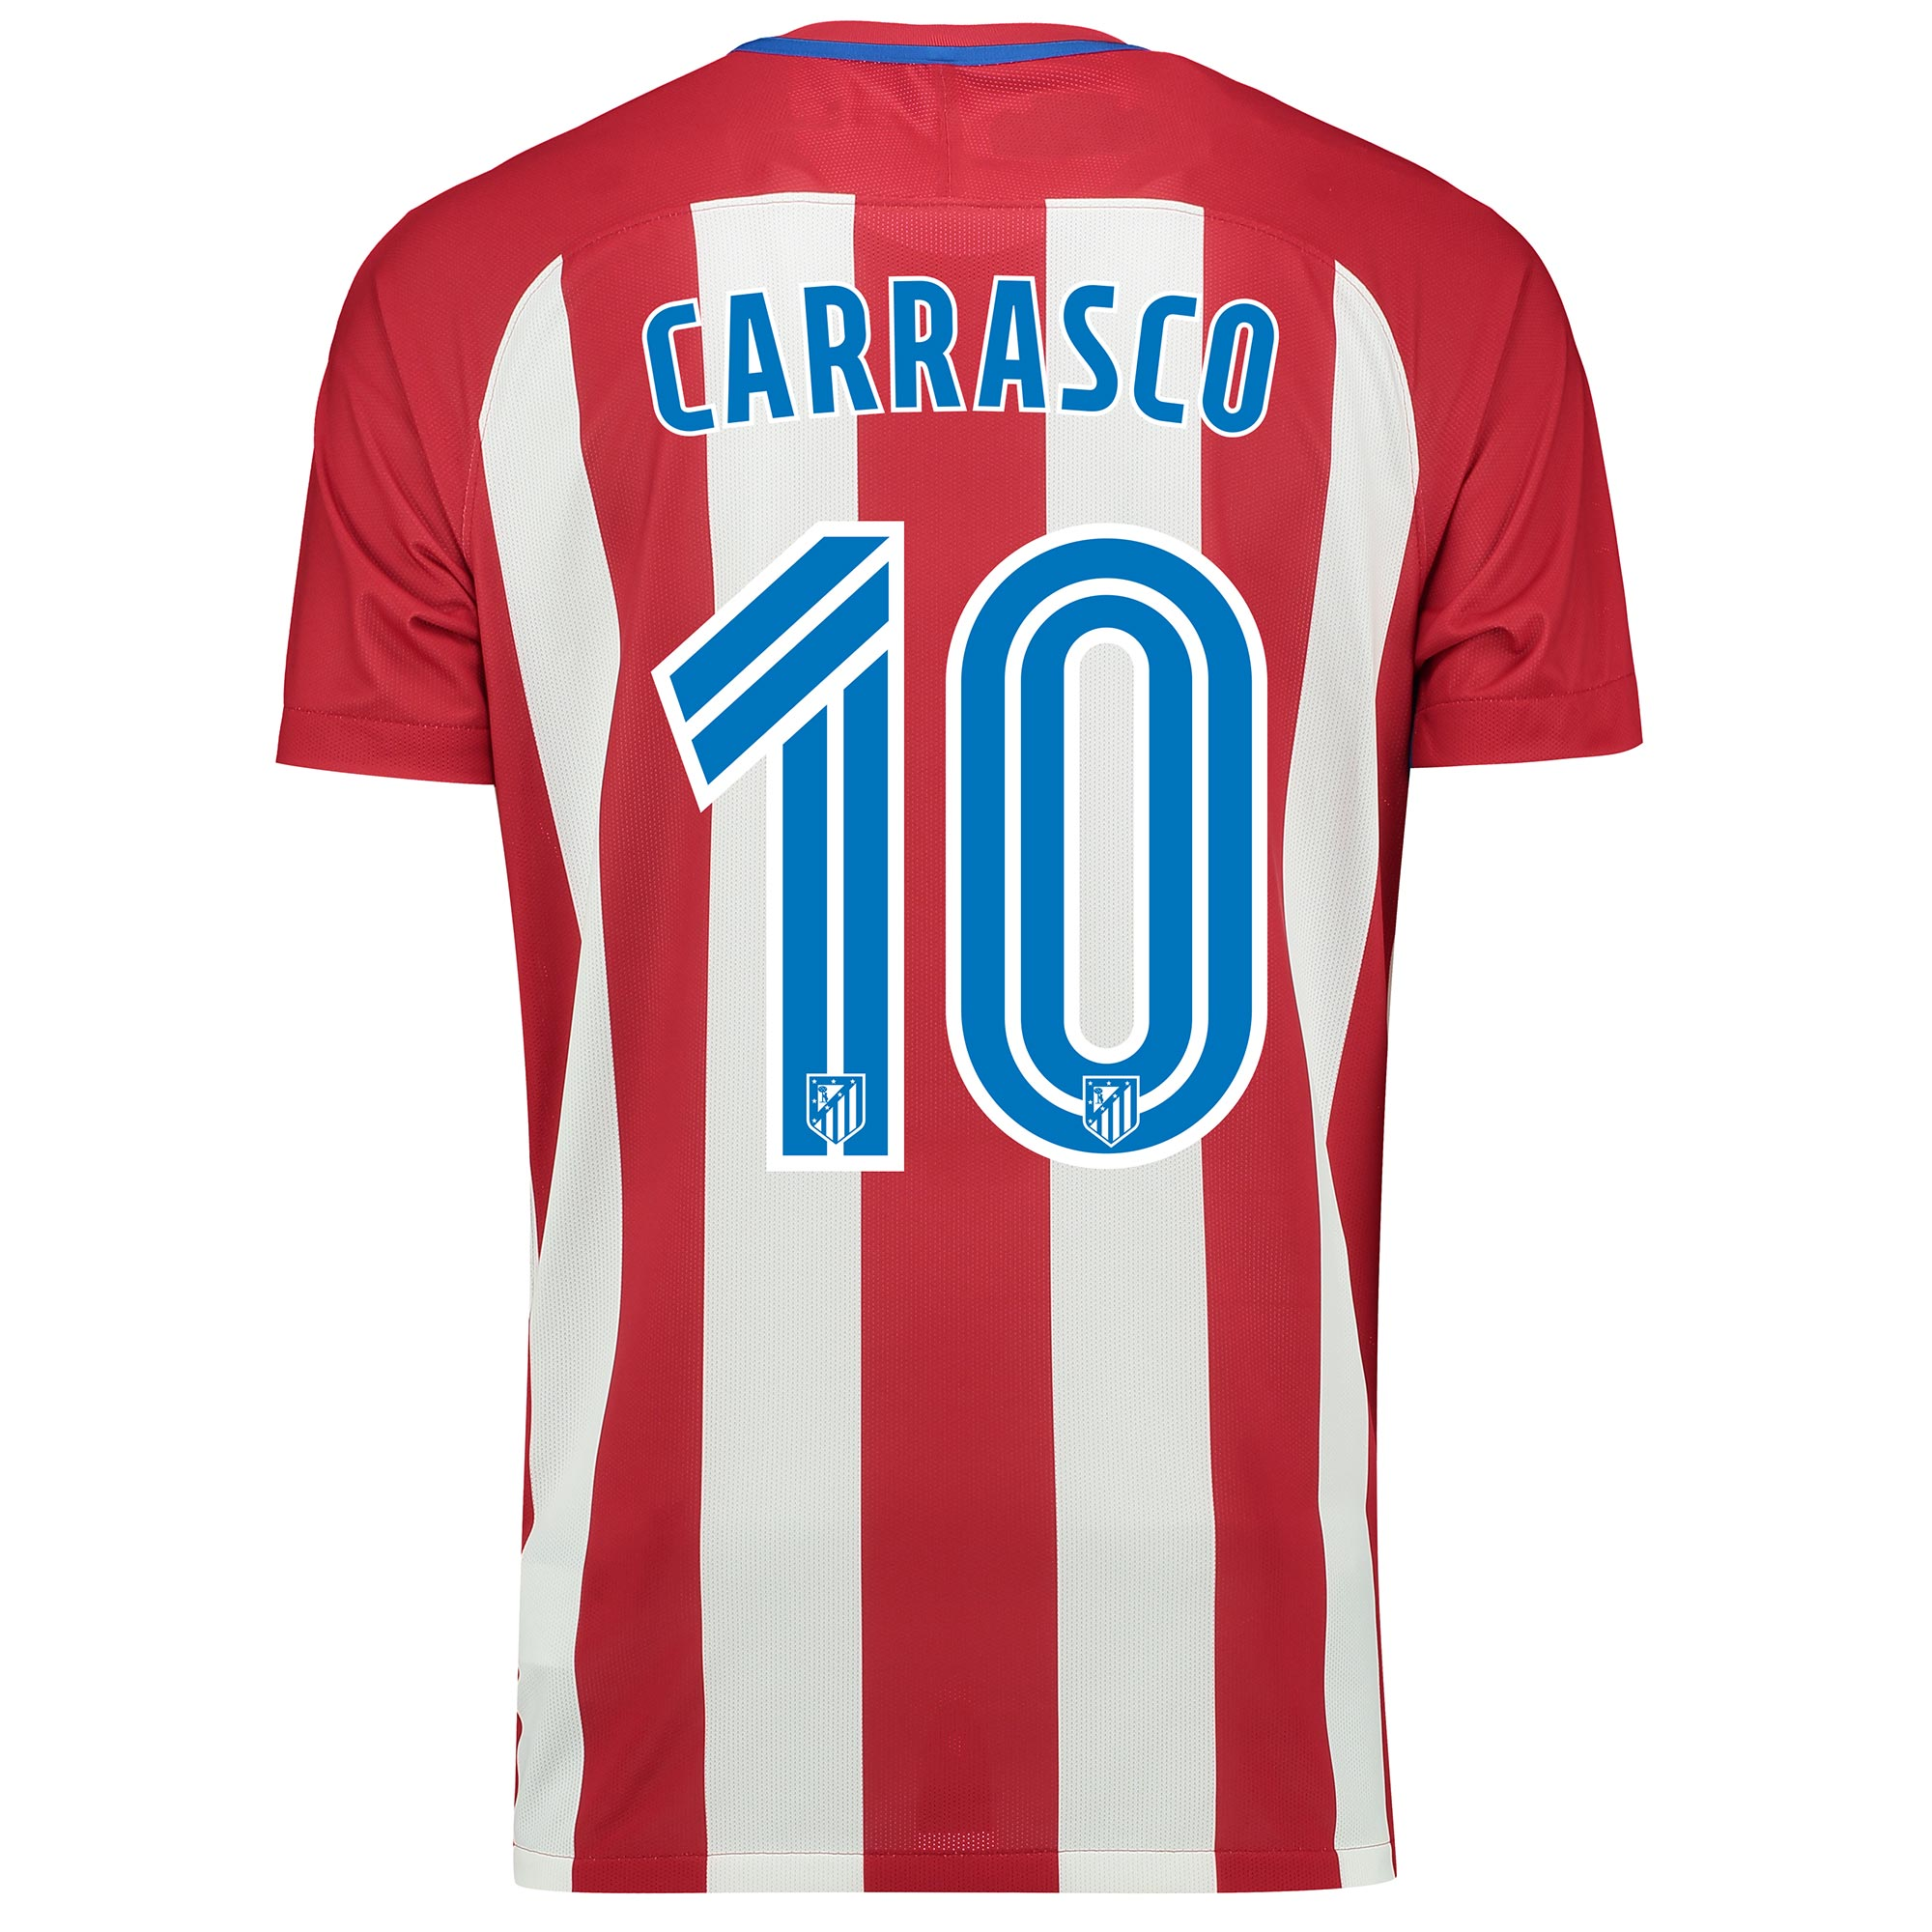 Image of Atletico Madrid Home Match Shirt 2016-17 with Carrasco 10 printing, Red/White